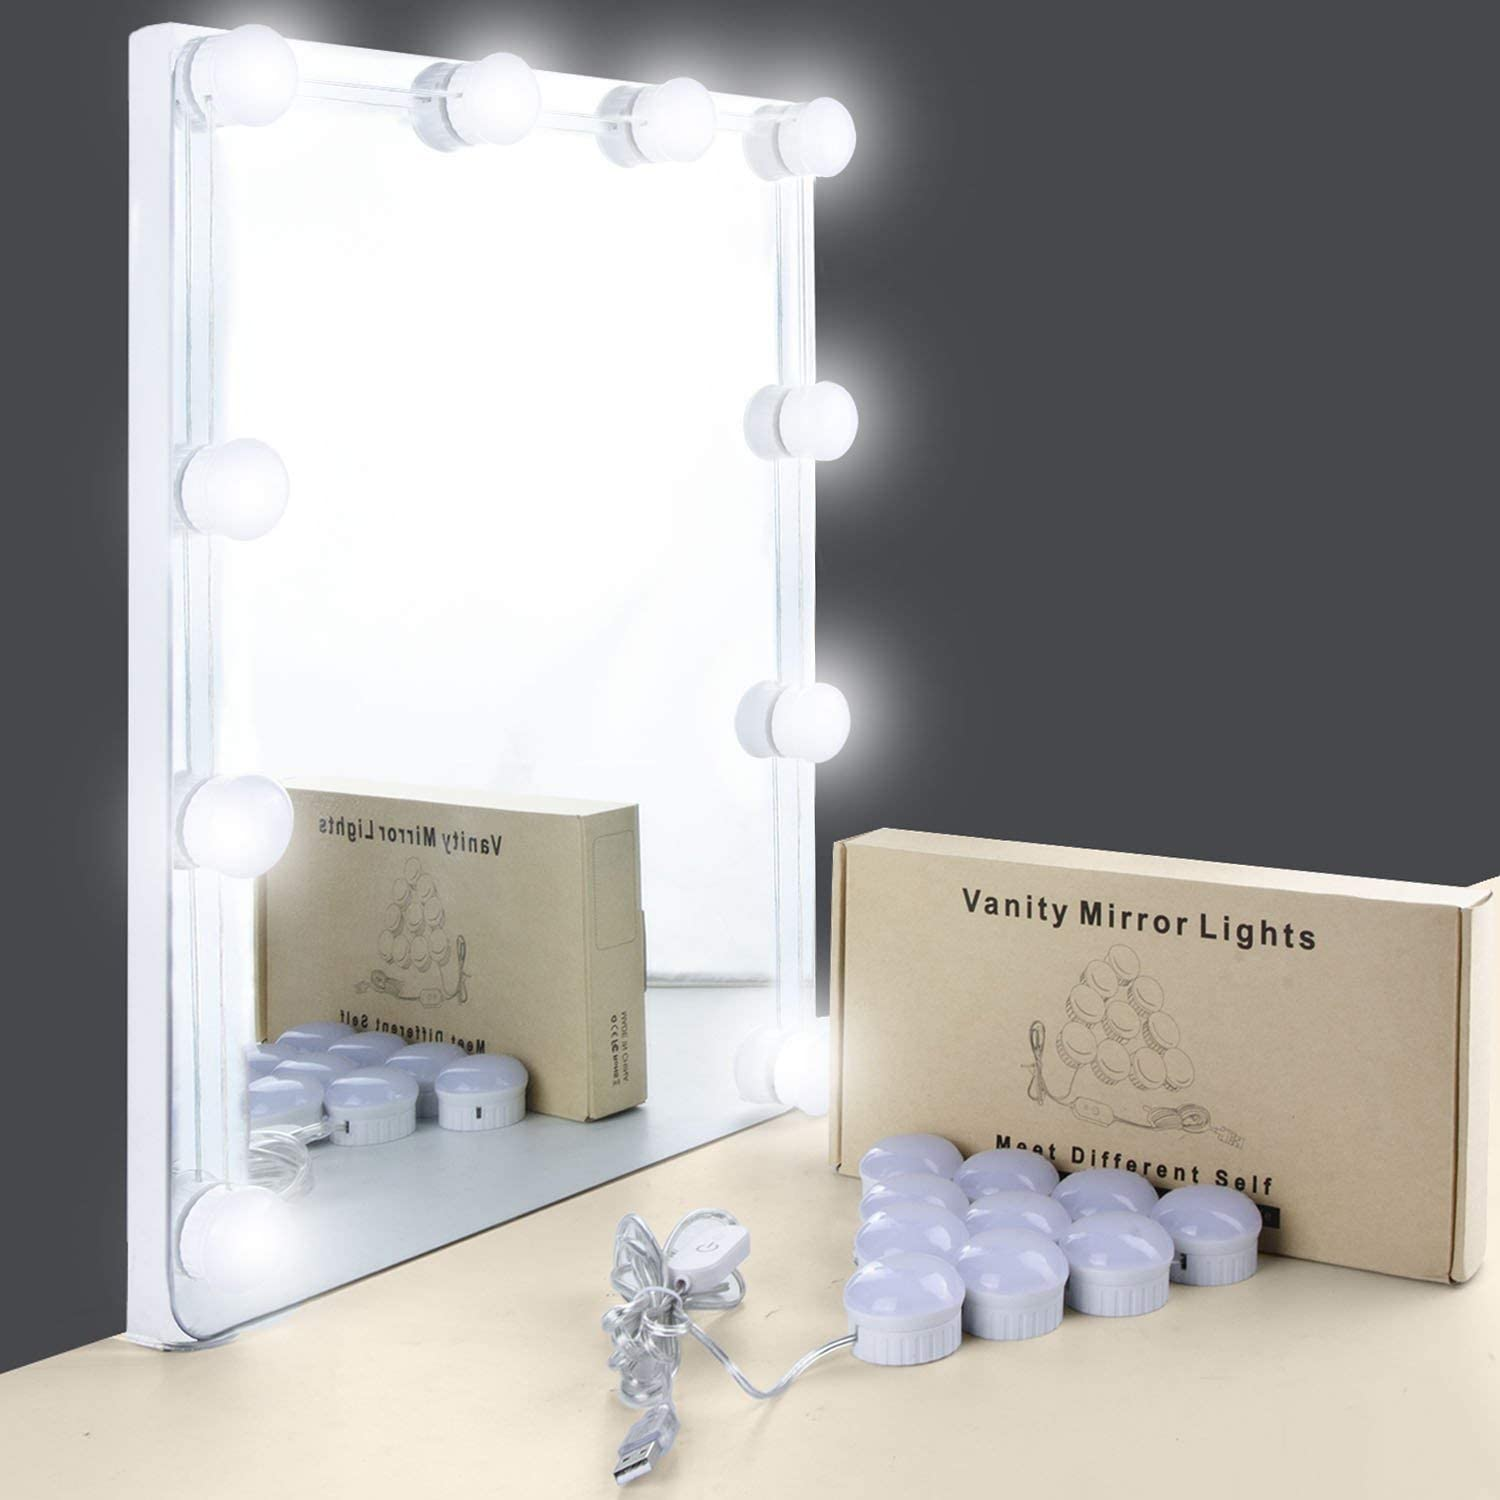 Mirror Lights, UNIFUN Hollywood Style LED Makeup Mirror Lights with 10 Dimmable Bulbs, USB Powered Flexible Lighting Fixture for Bathroom, Makeup Dressing Table (Mirror Not Include)